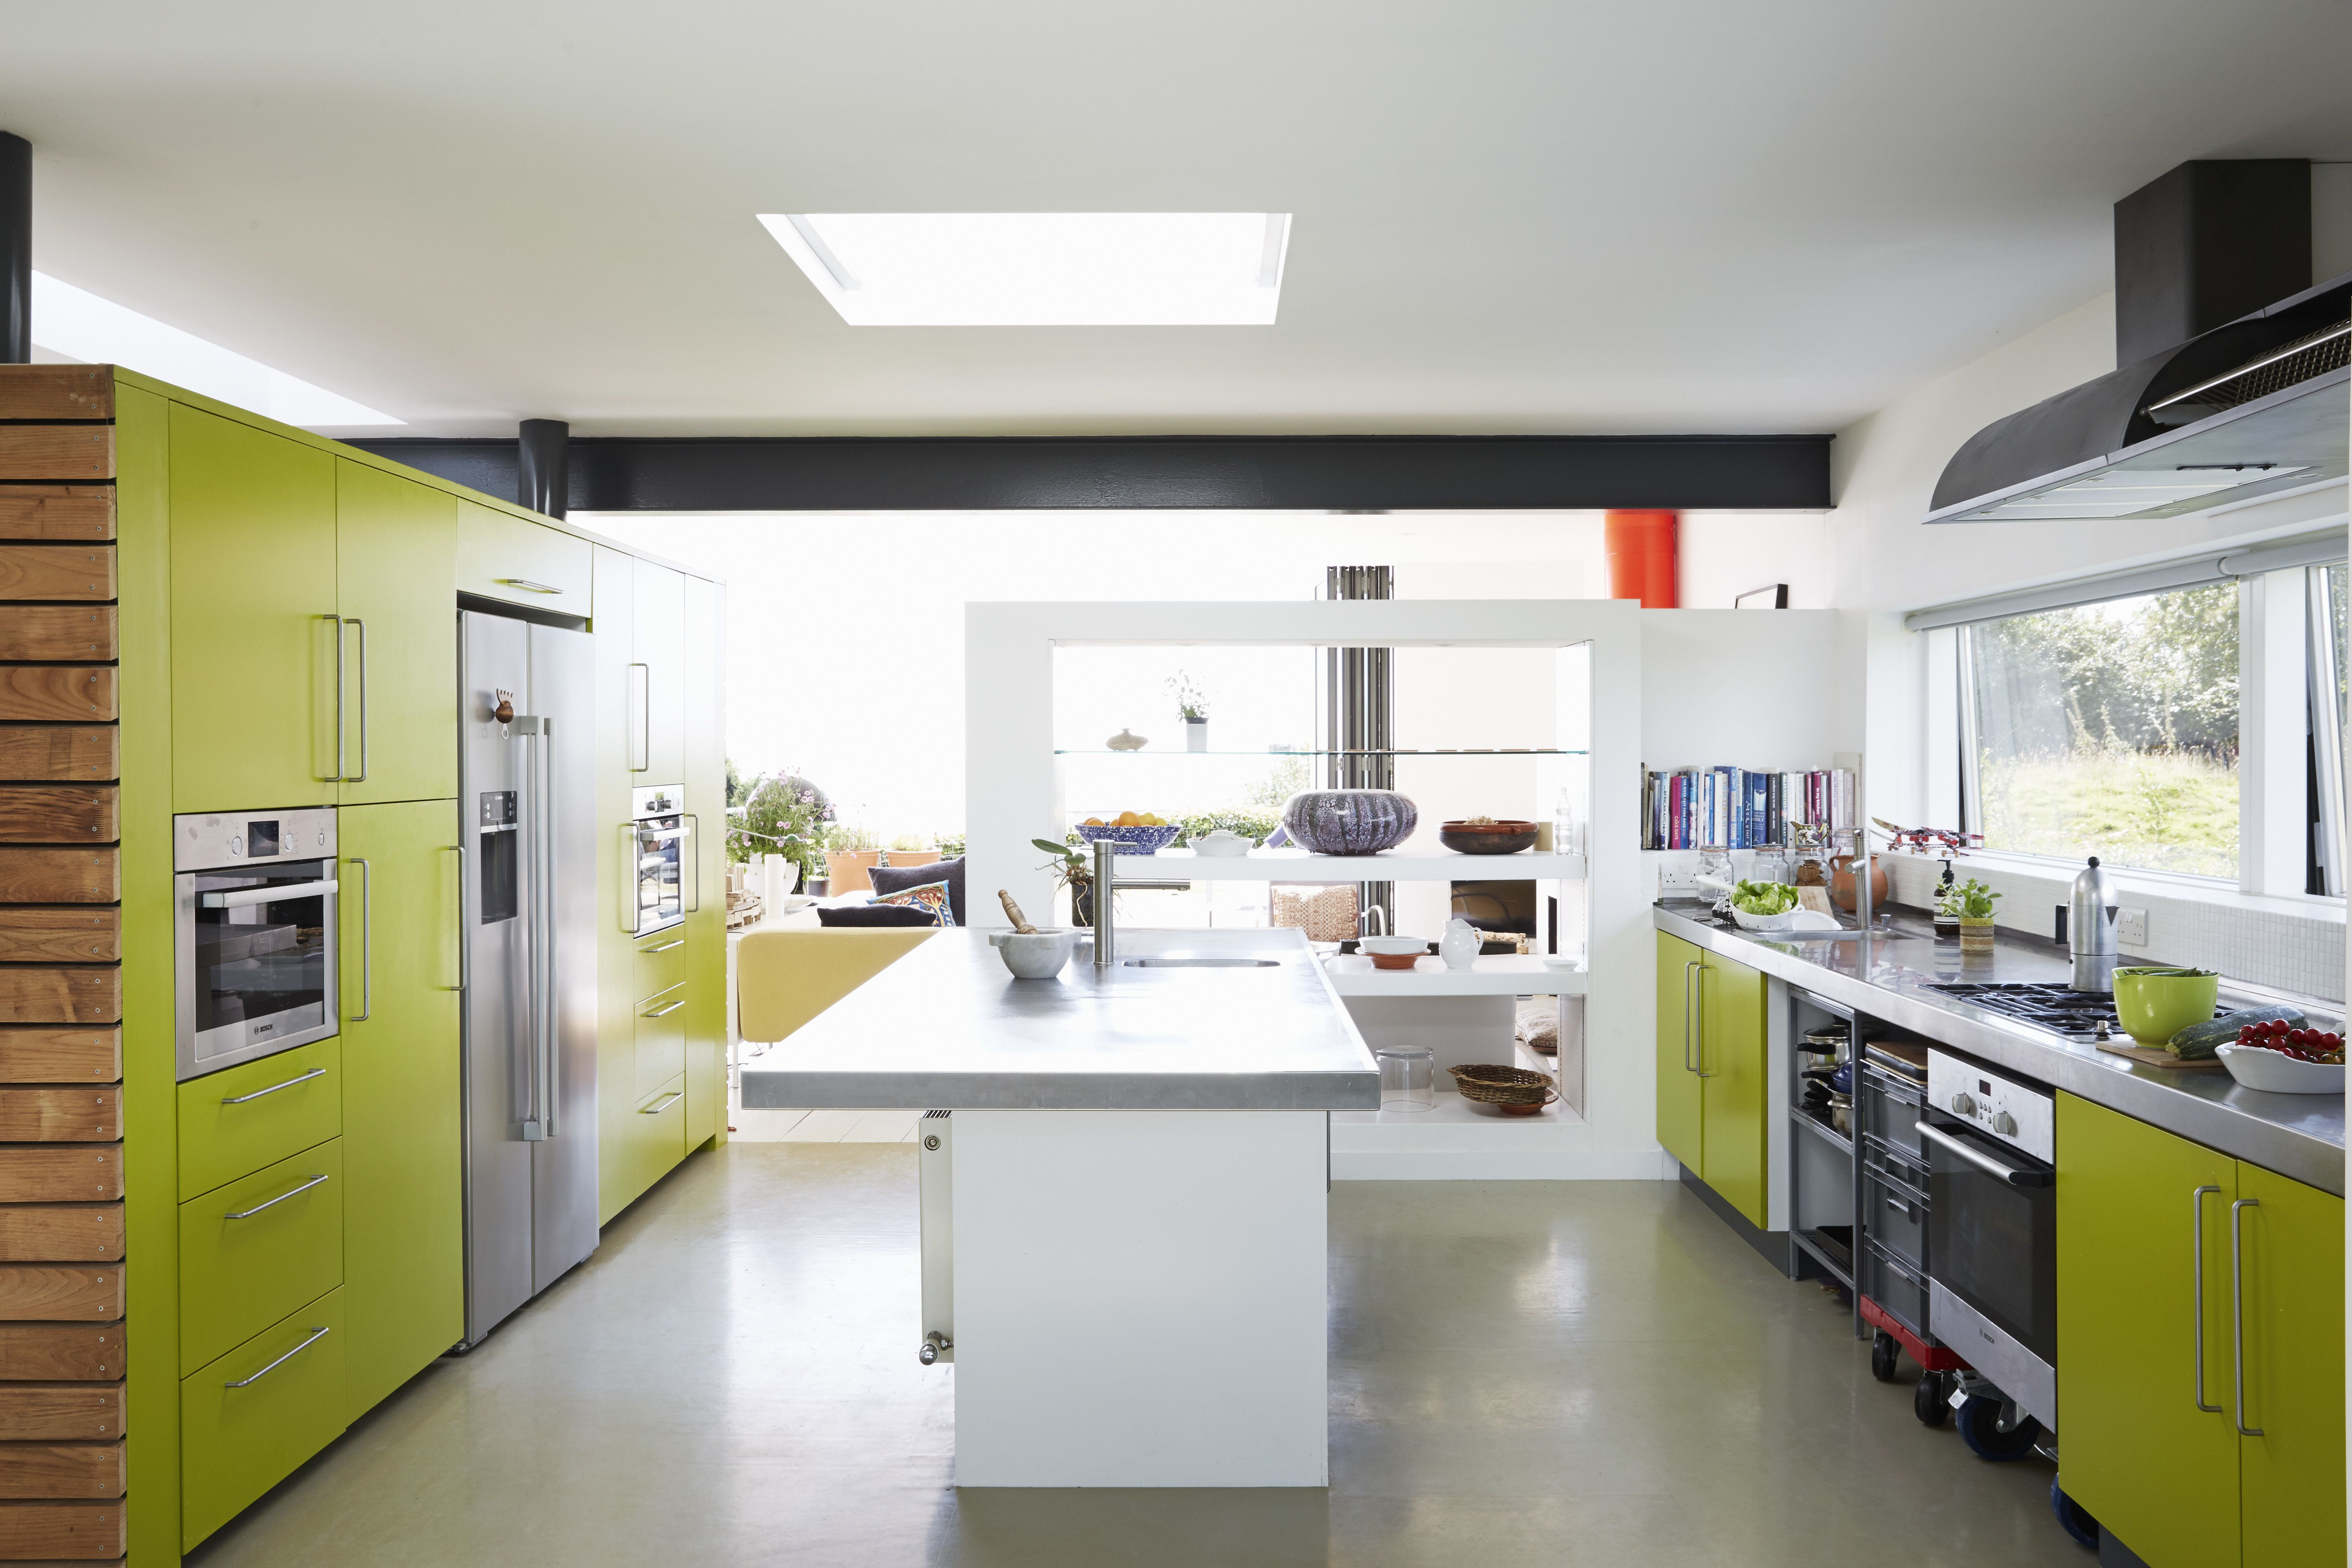 ... Equipped With Bosch Appliances And A 16 Foot Steel Countertop The